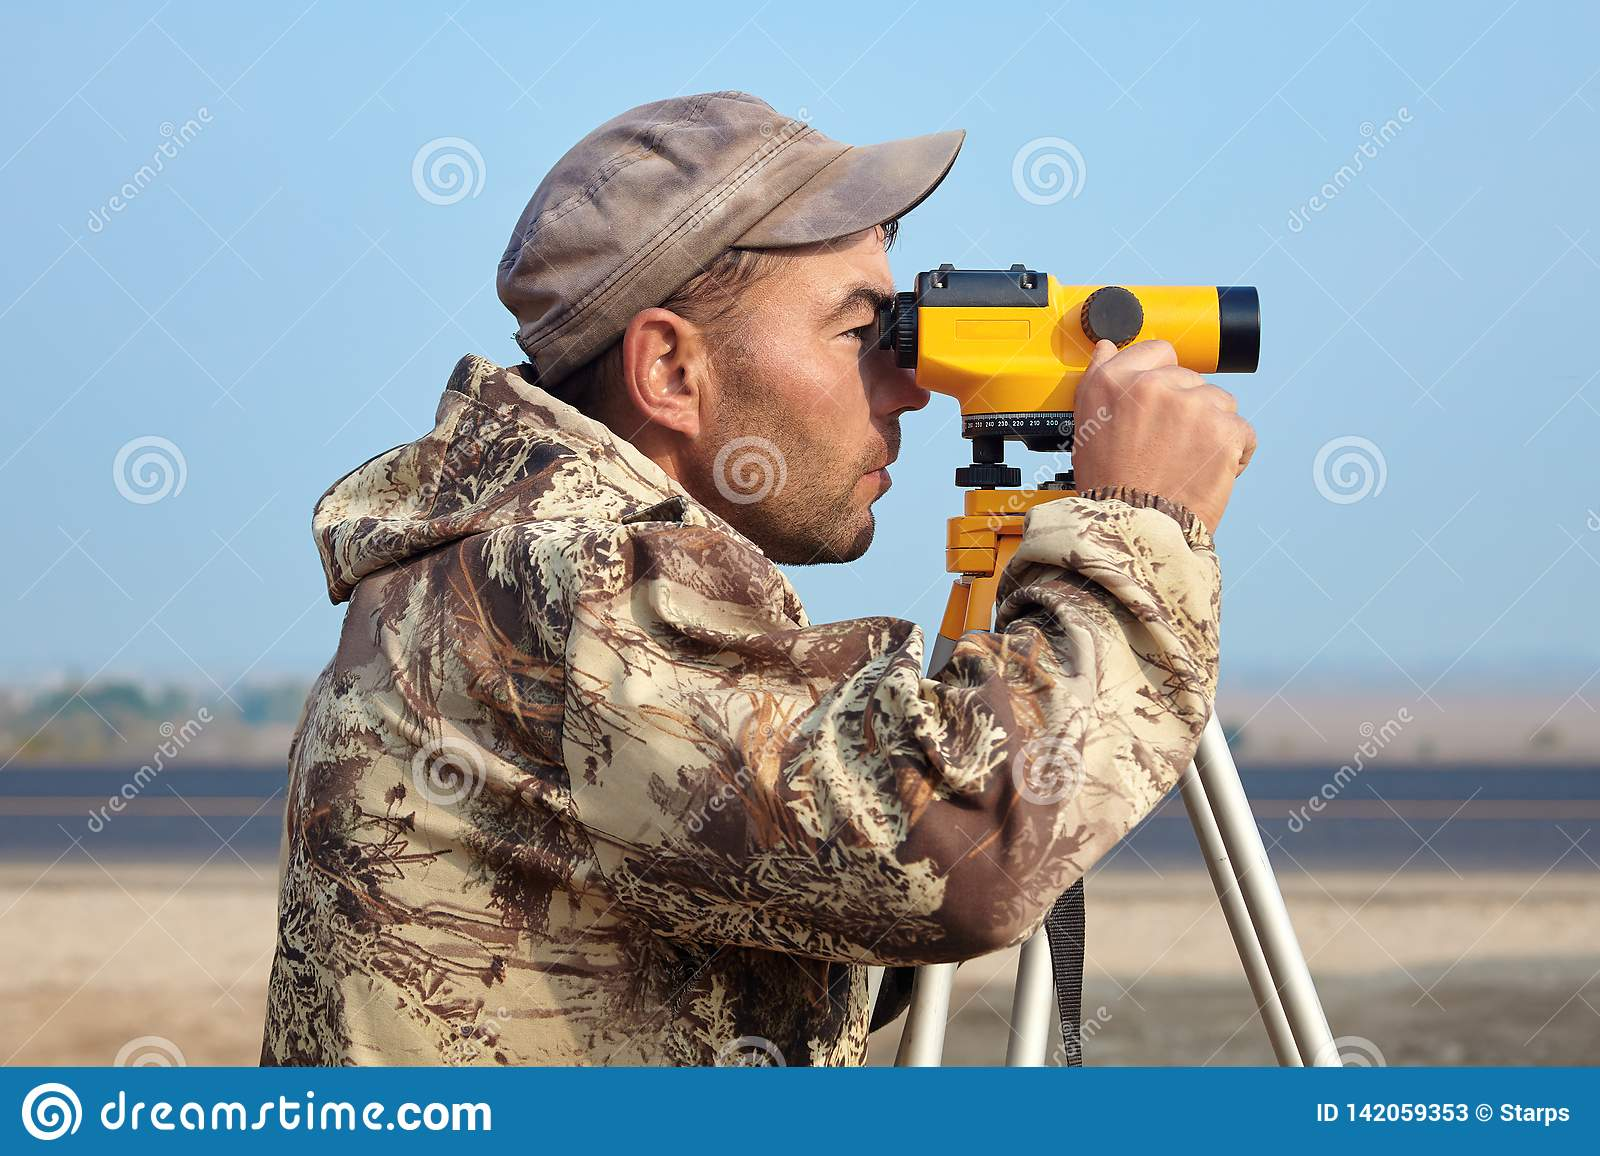 Worker with level, surveyor builder with geodesy equipment close to highway, with mobile phone, smiling.